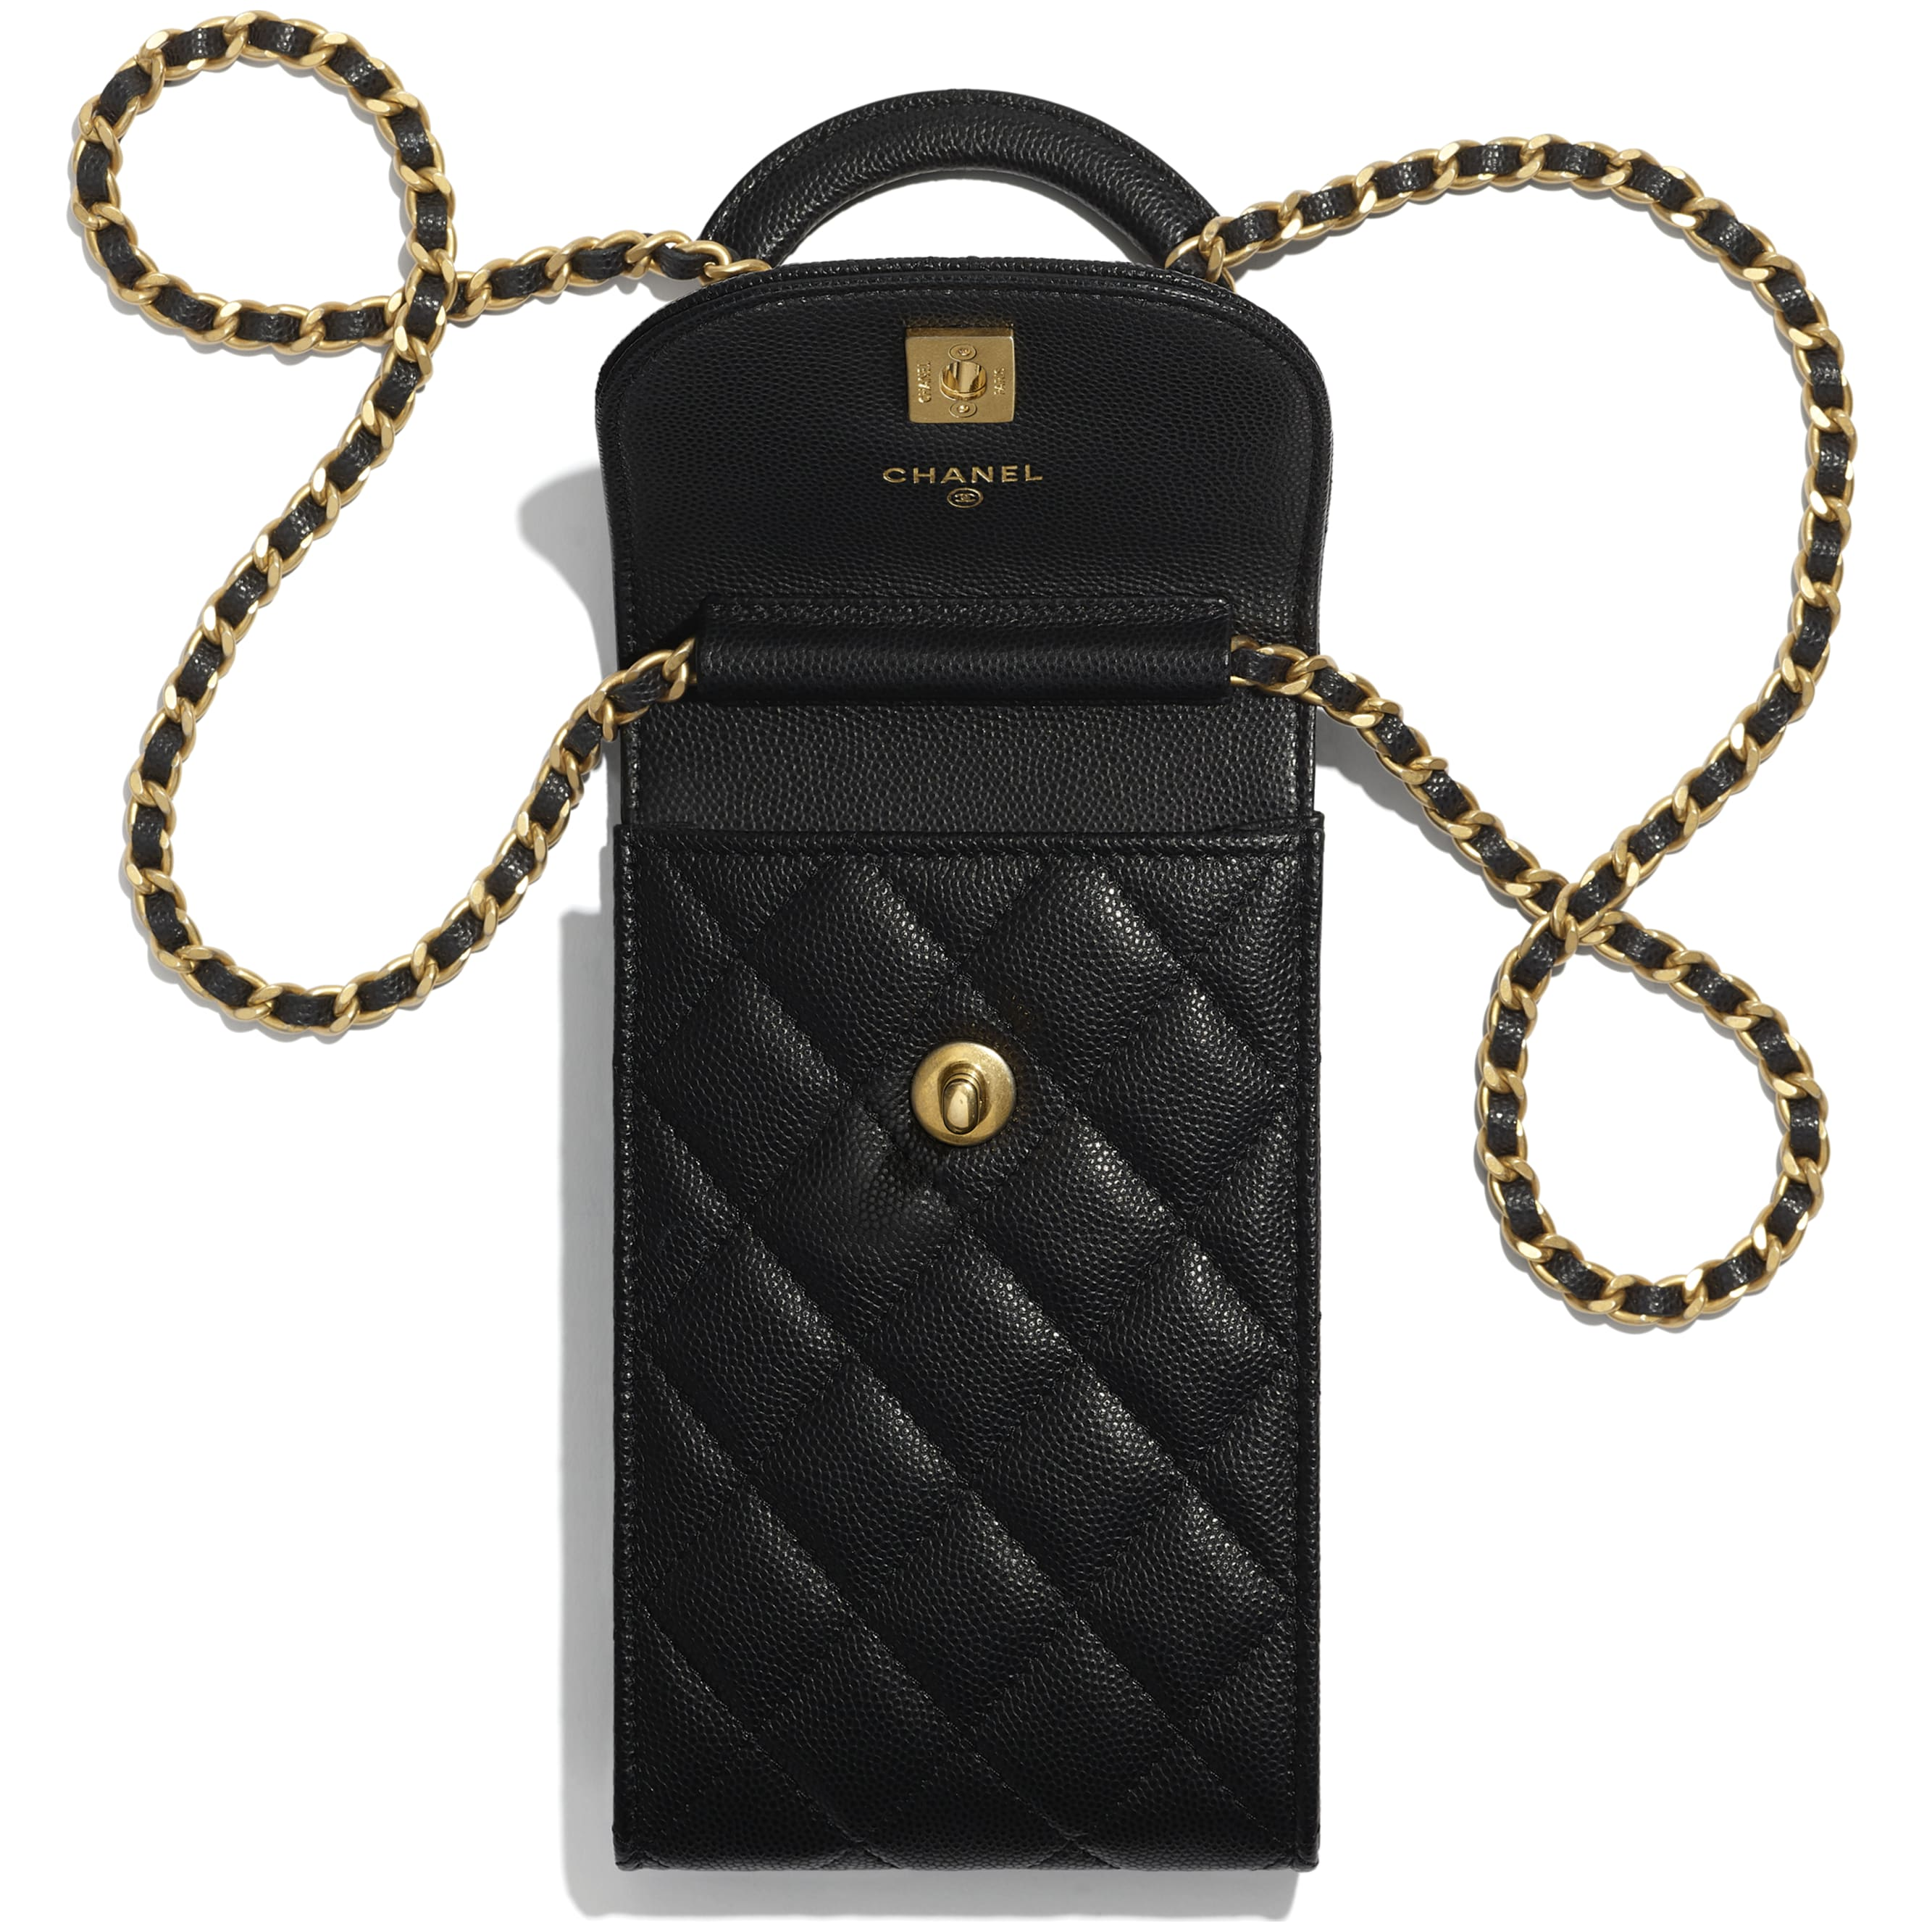 Phone Holder With Chain - Black - Grained Shiny Calfskin & Gold-Tone Metal - CHANEL - Other view - see standard sized version